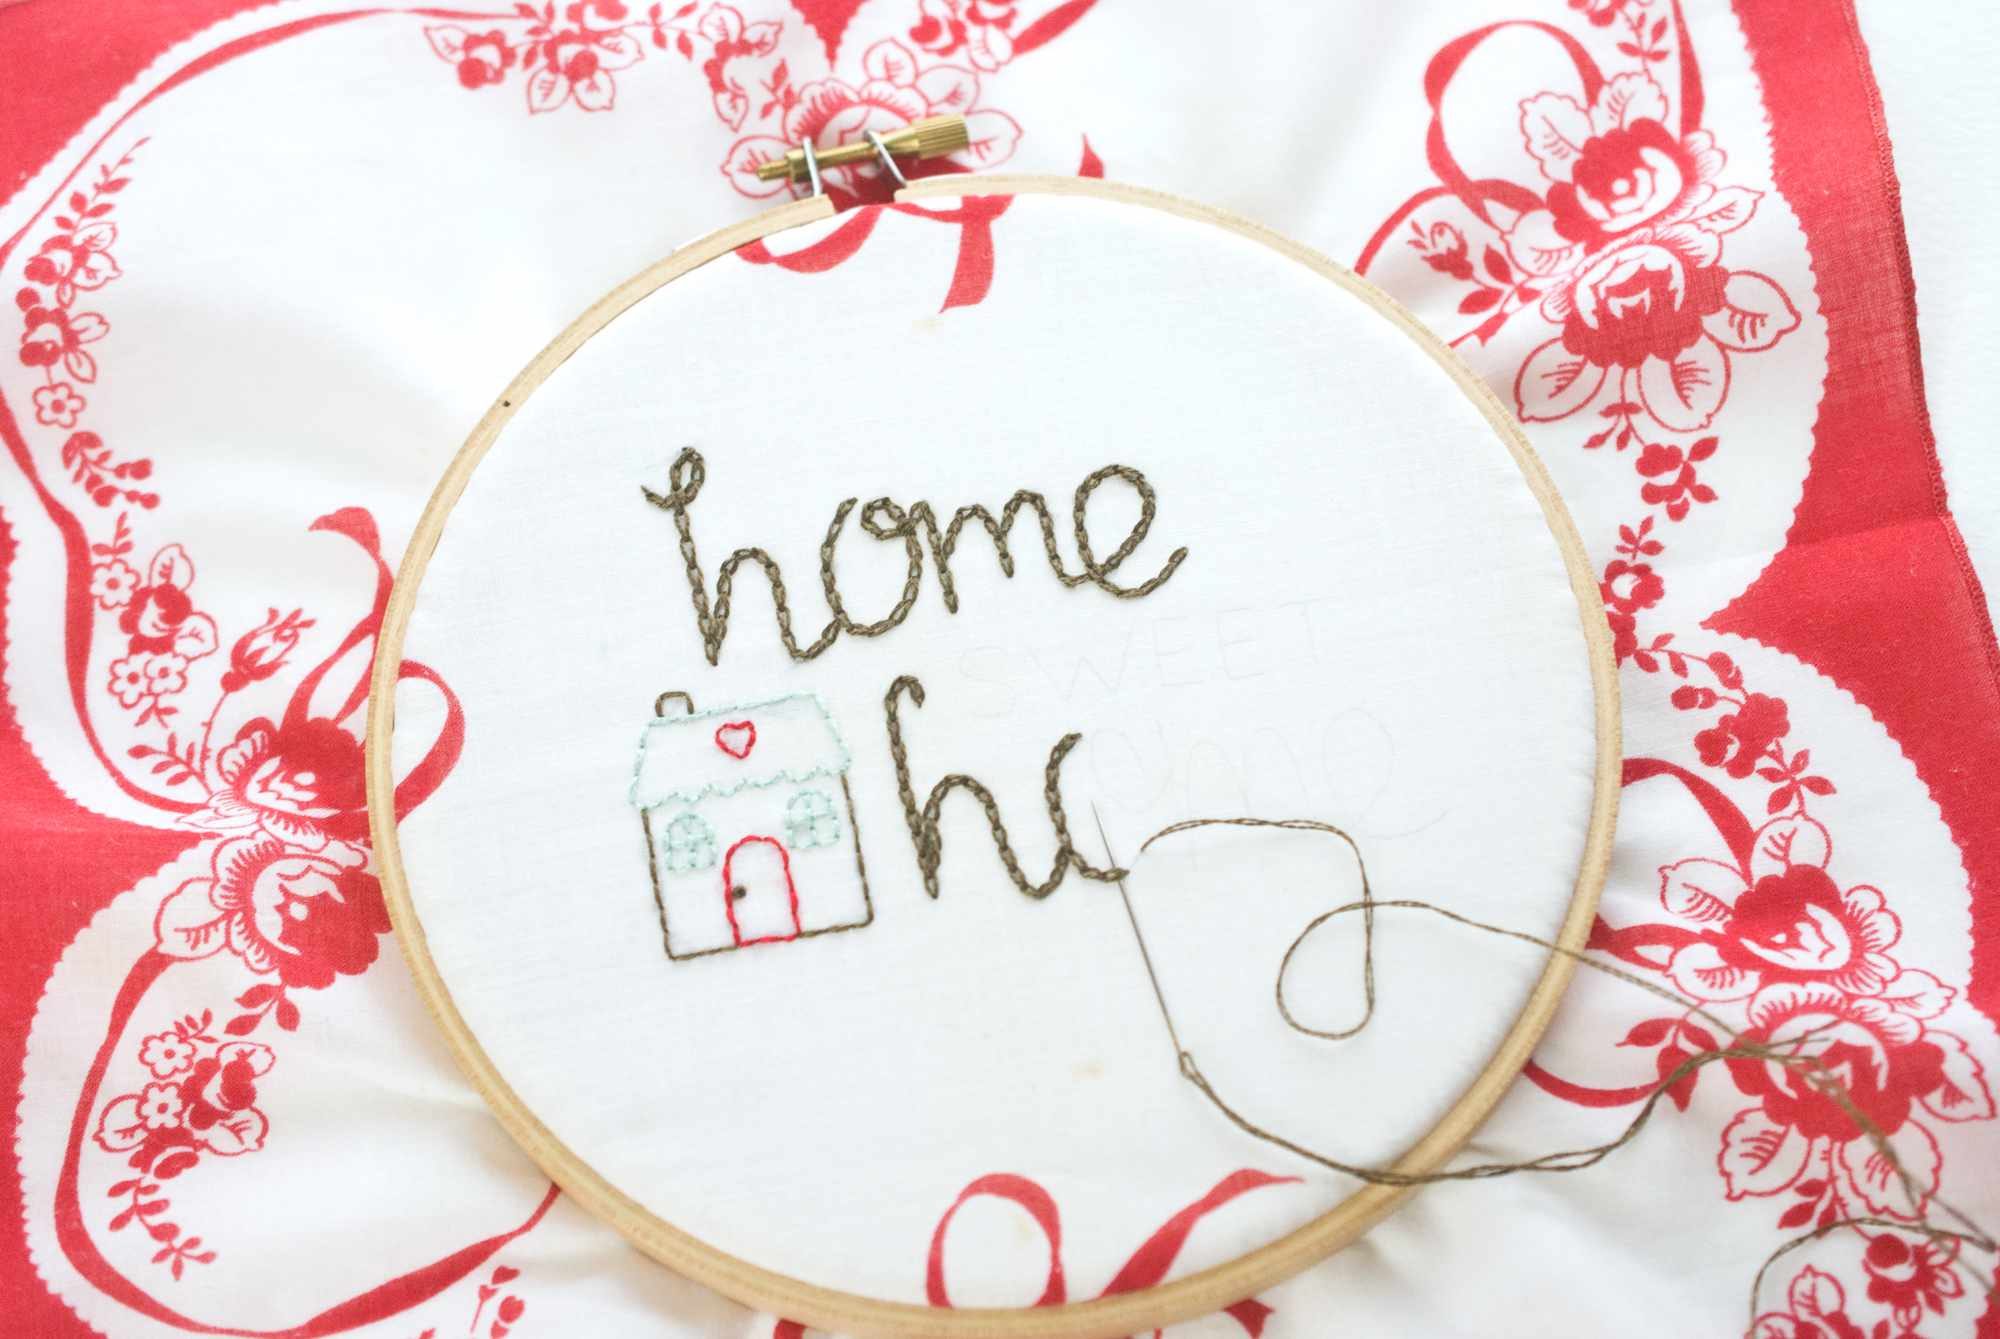 Embroidery Sampler Patterns Free Our Top 25 Free Embroidery Designs